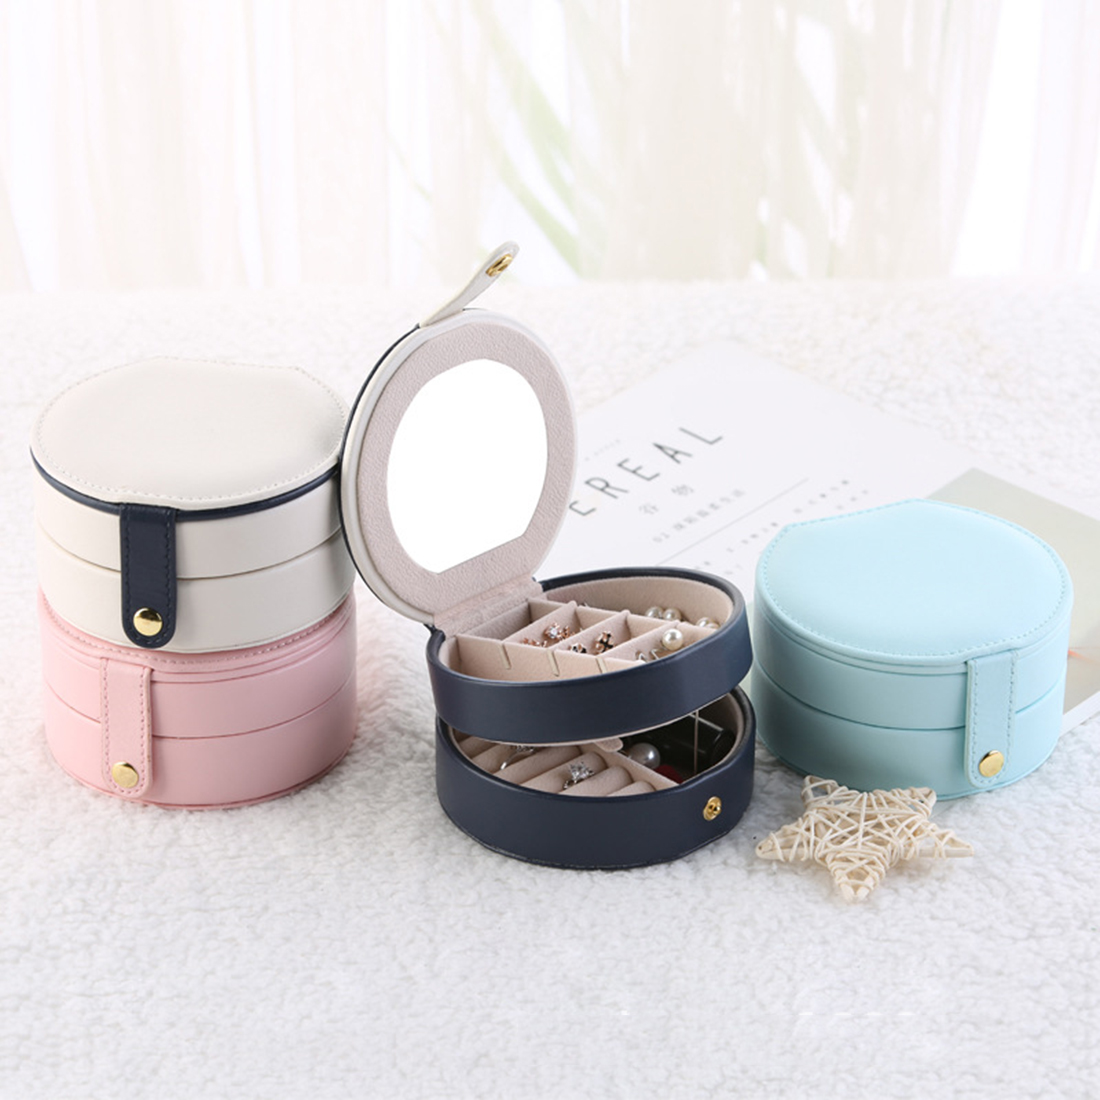 Multi layer Portable Earring Rings Holder Jewelry Box Organizer Jewelry Holder Storage Case Light Pink Blue Dark Blue White in Storage Boxes Bins from Home Garden